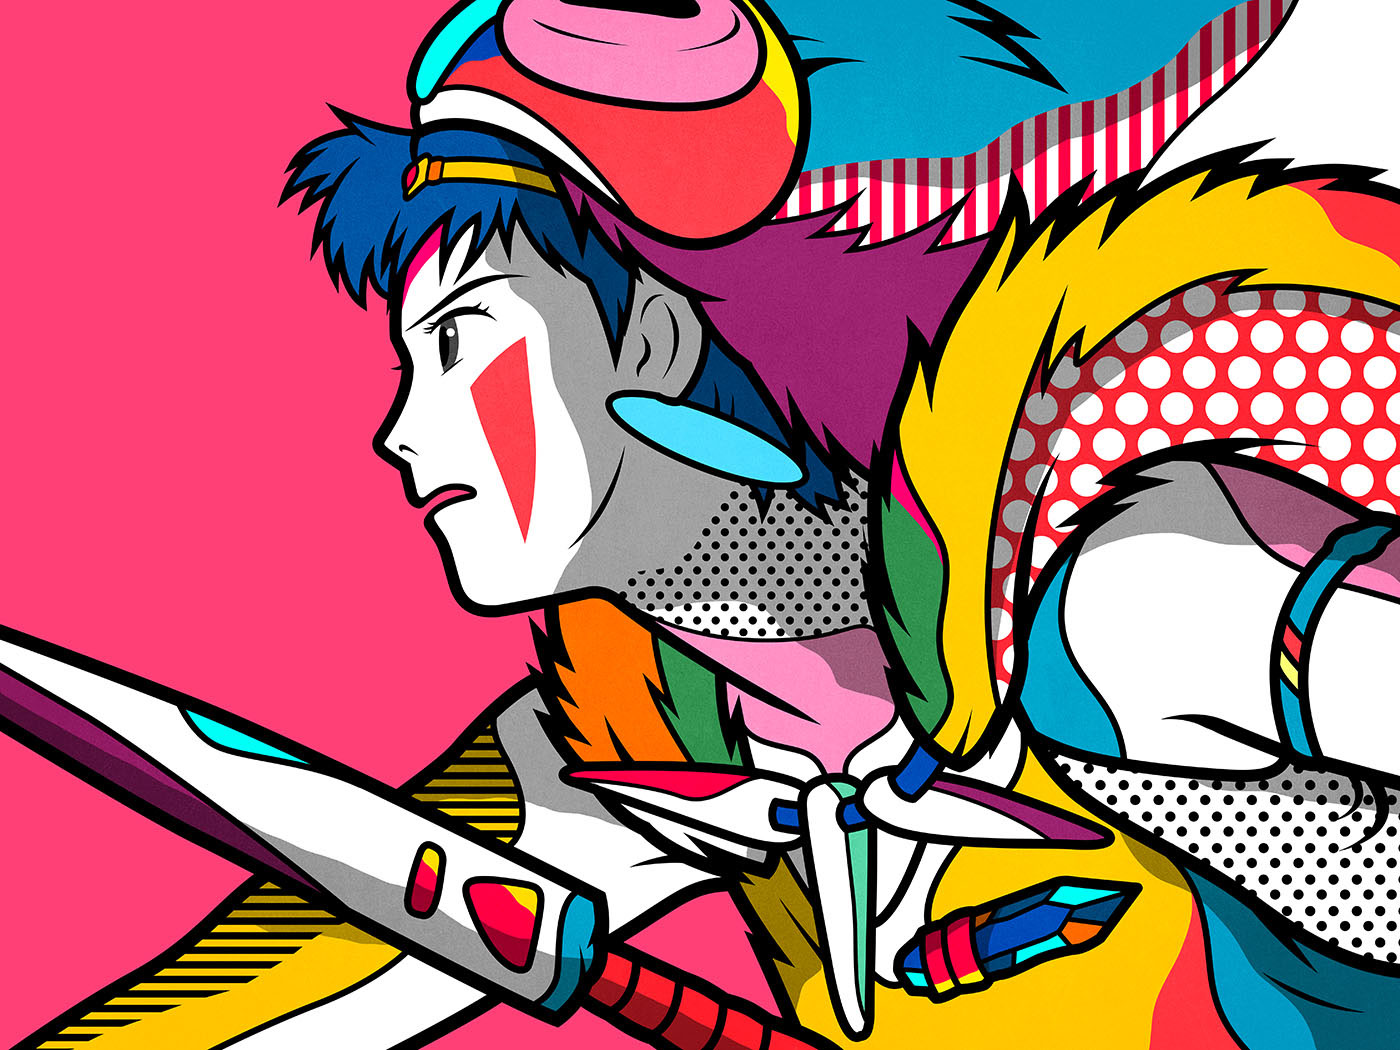 Pop-Inspired Colorful Illustrations